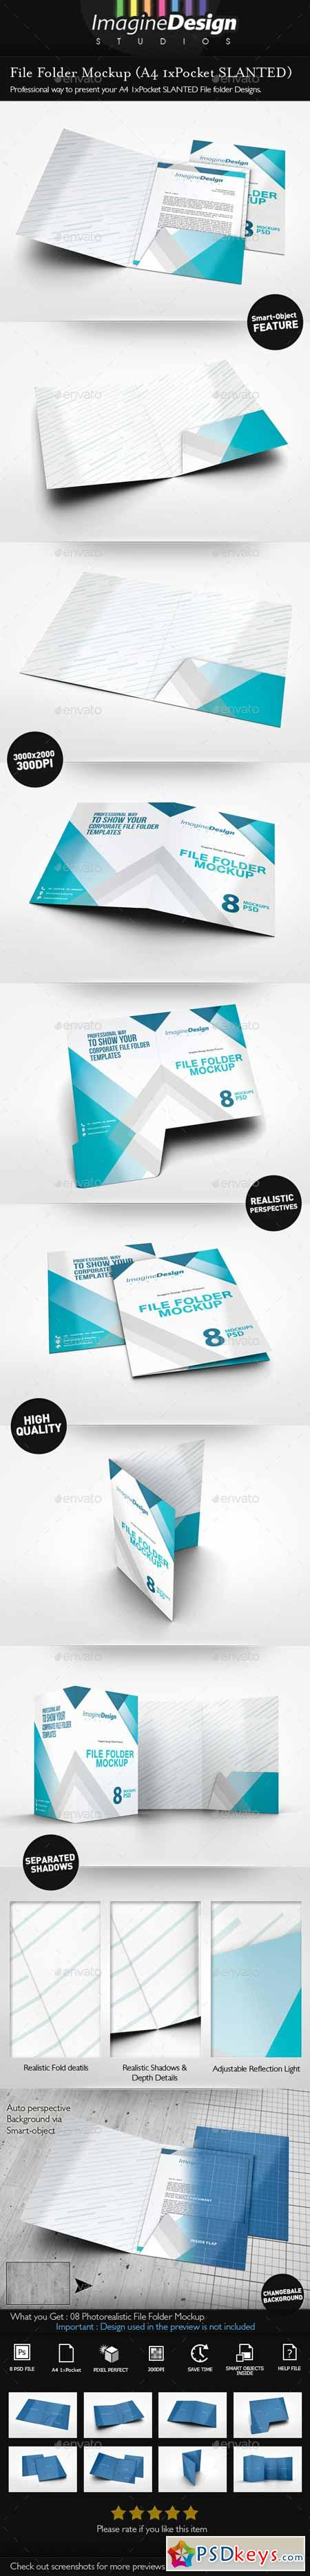 File Folder Mockup 10595159 » Free Download Photoshop Vector